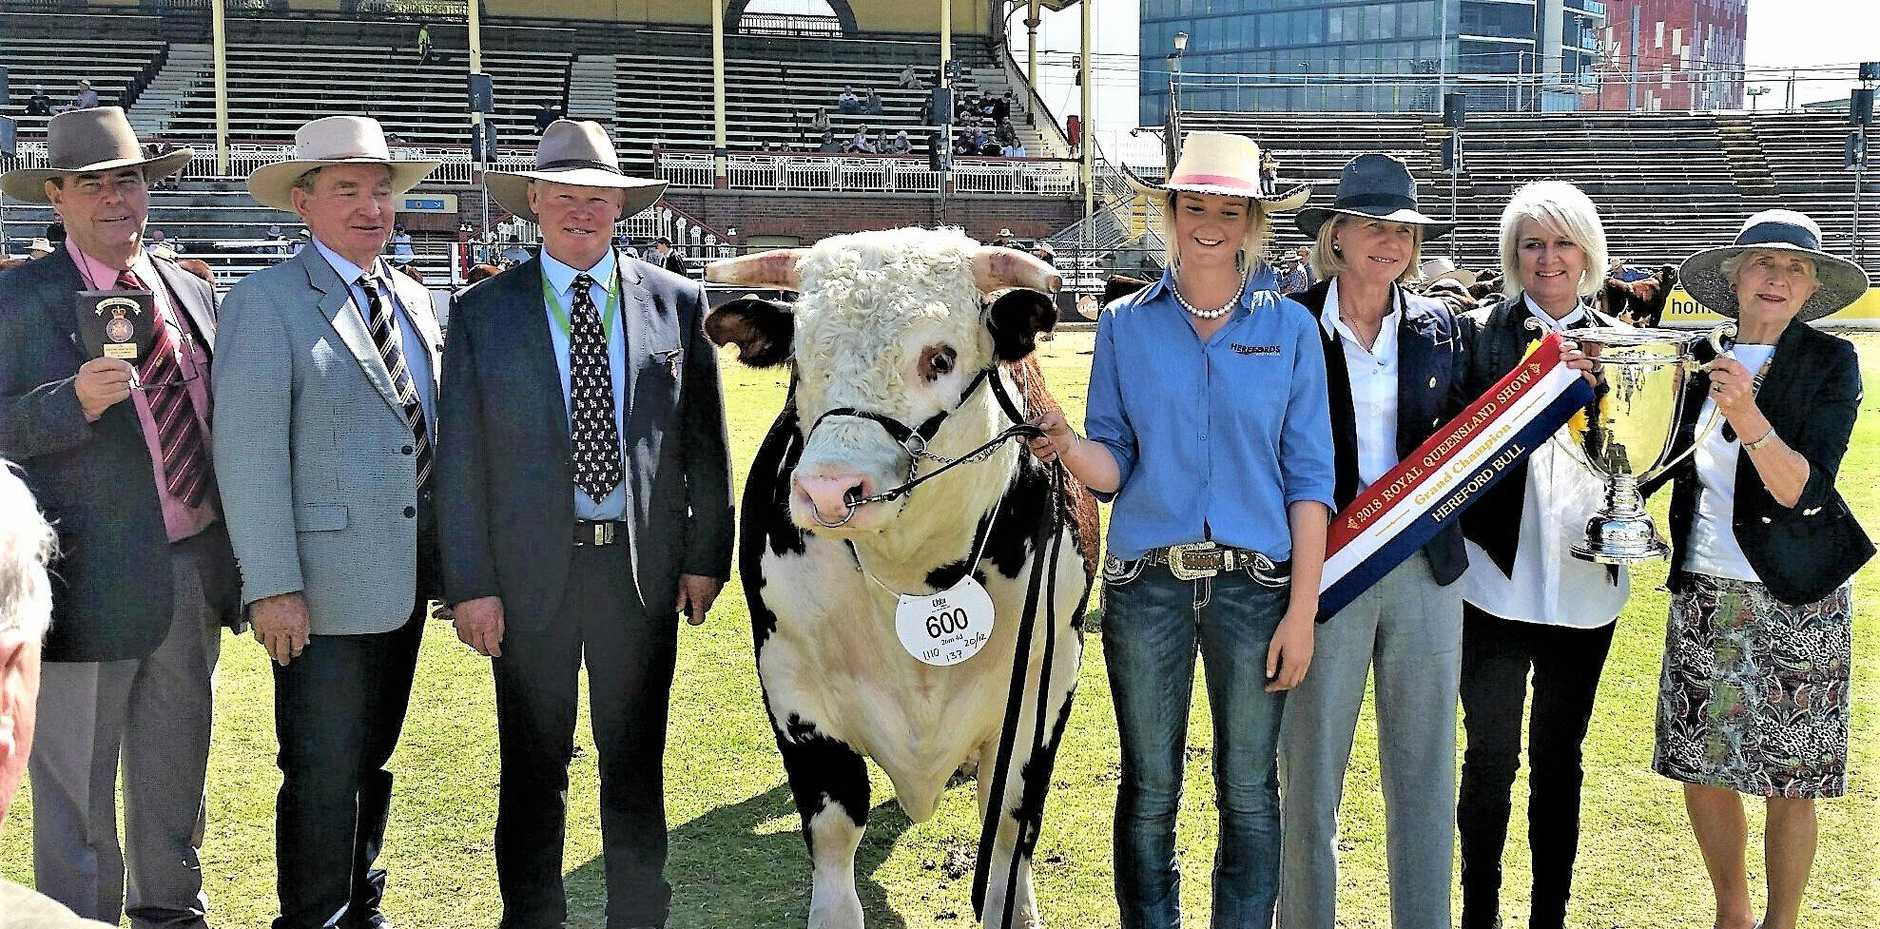 BIG WIN: Brian Kennedy from Elders presented the Shield of Excellence to owners Ian and Anne Galloway. Also pictured, judge Stephen Peake, leader Monique Miller, Catriona Pearce and Margie Adnam.